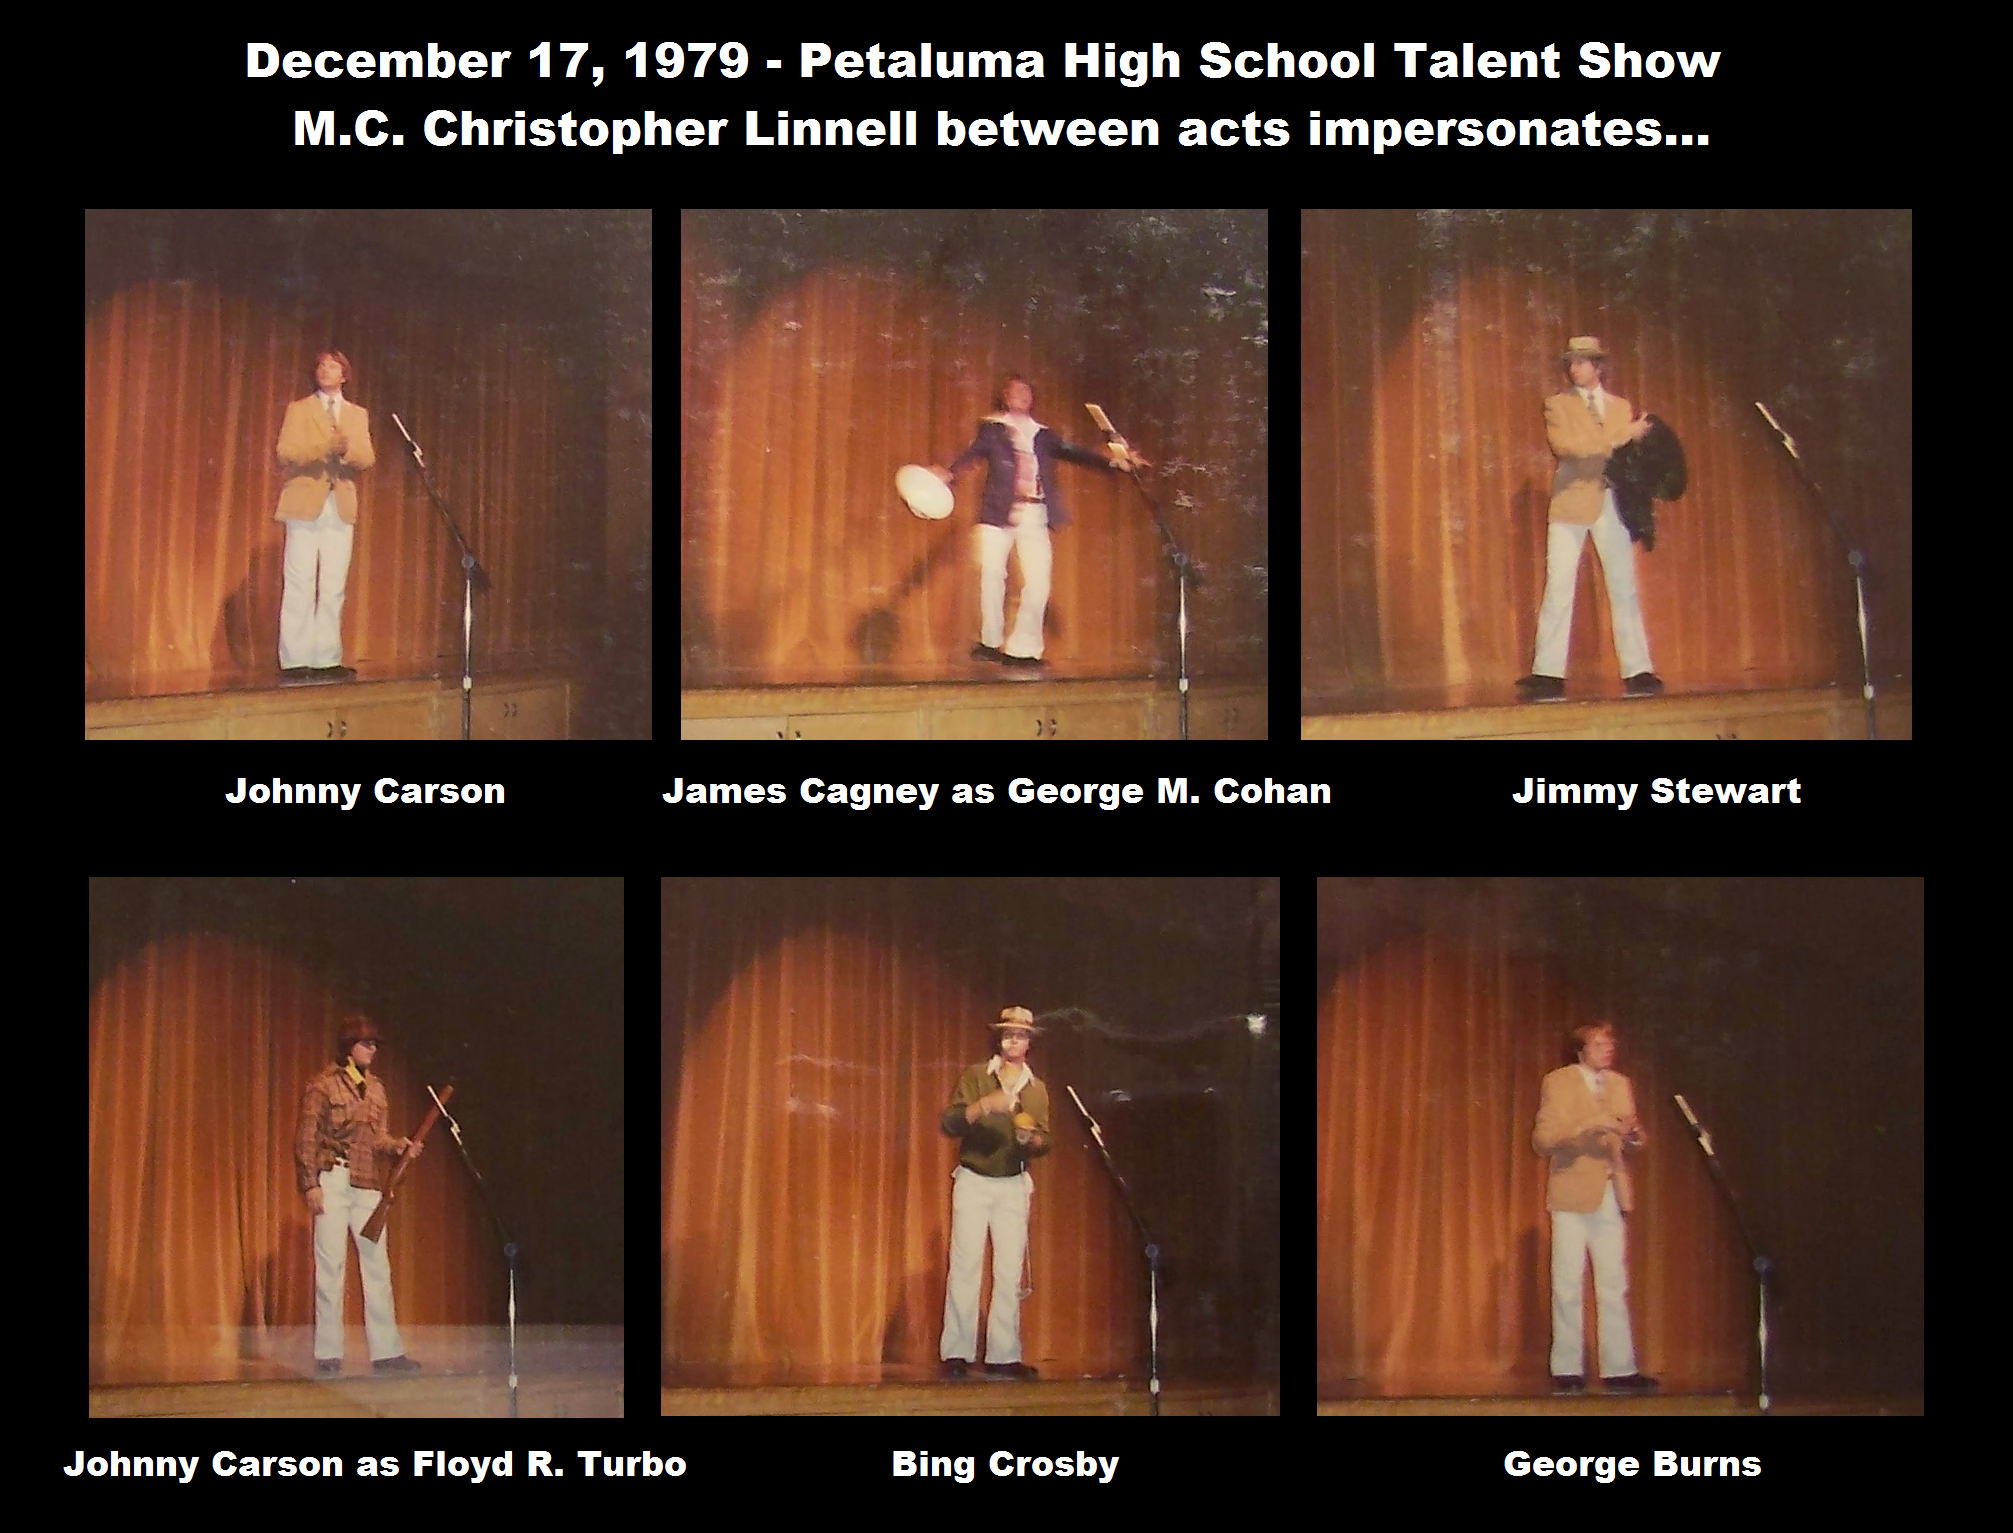 1979-12-17-Petaluma High School Talent Show